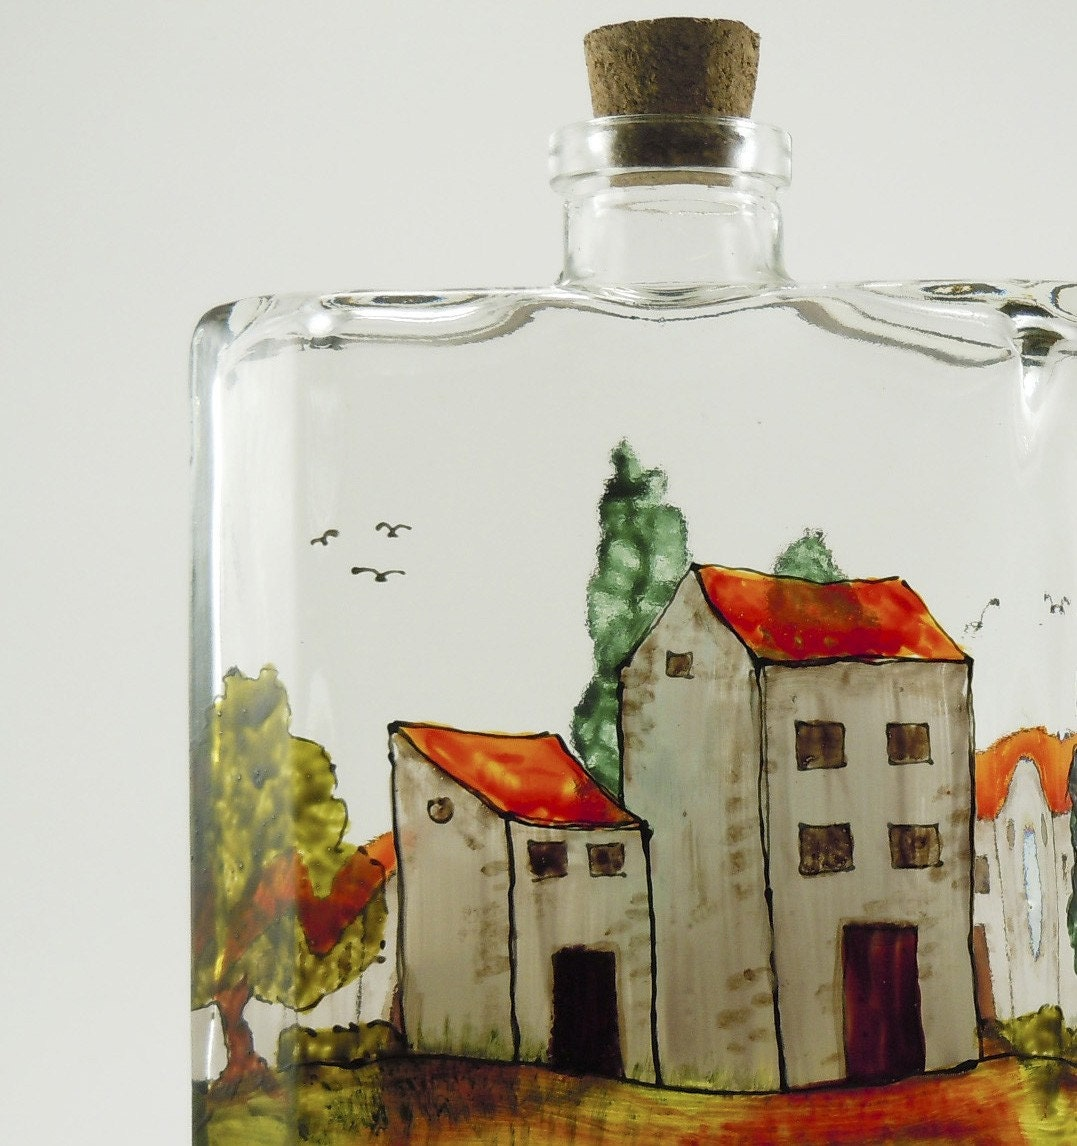 Village Provencal - Hand painted glass bottle for oil, vinegar, soap